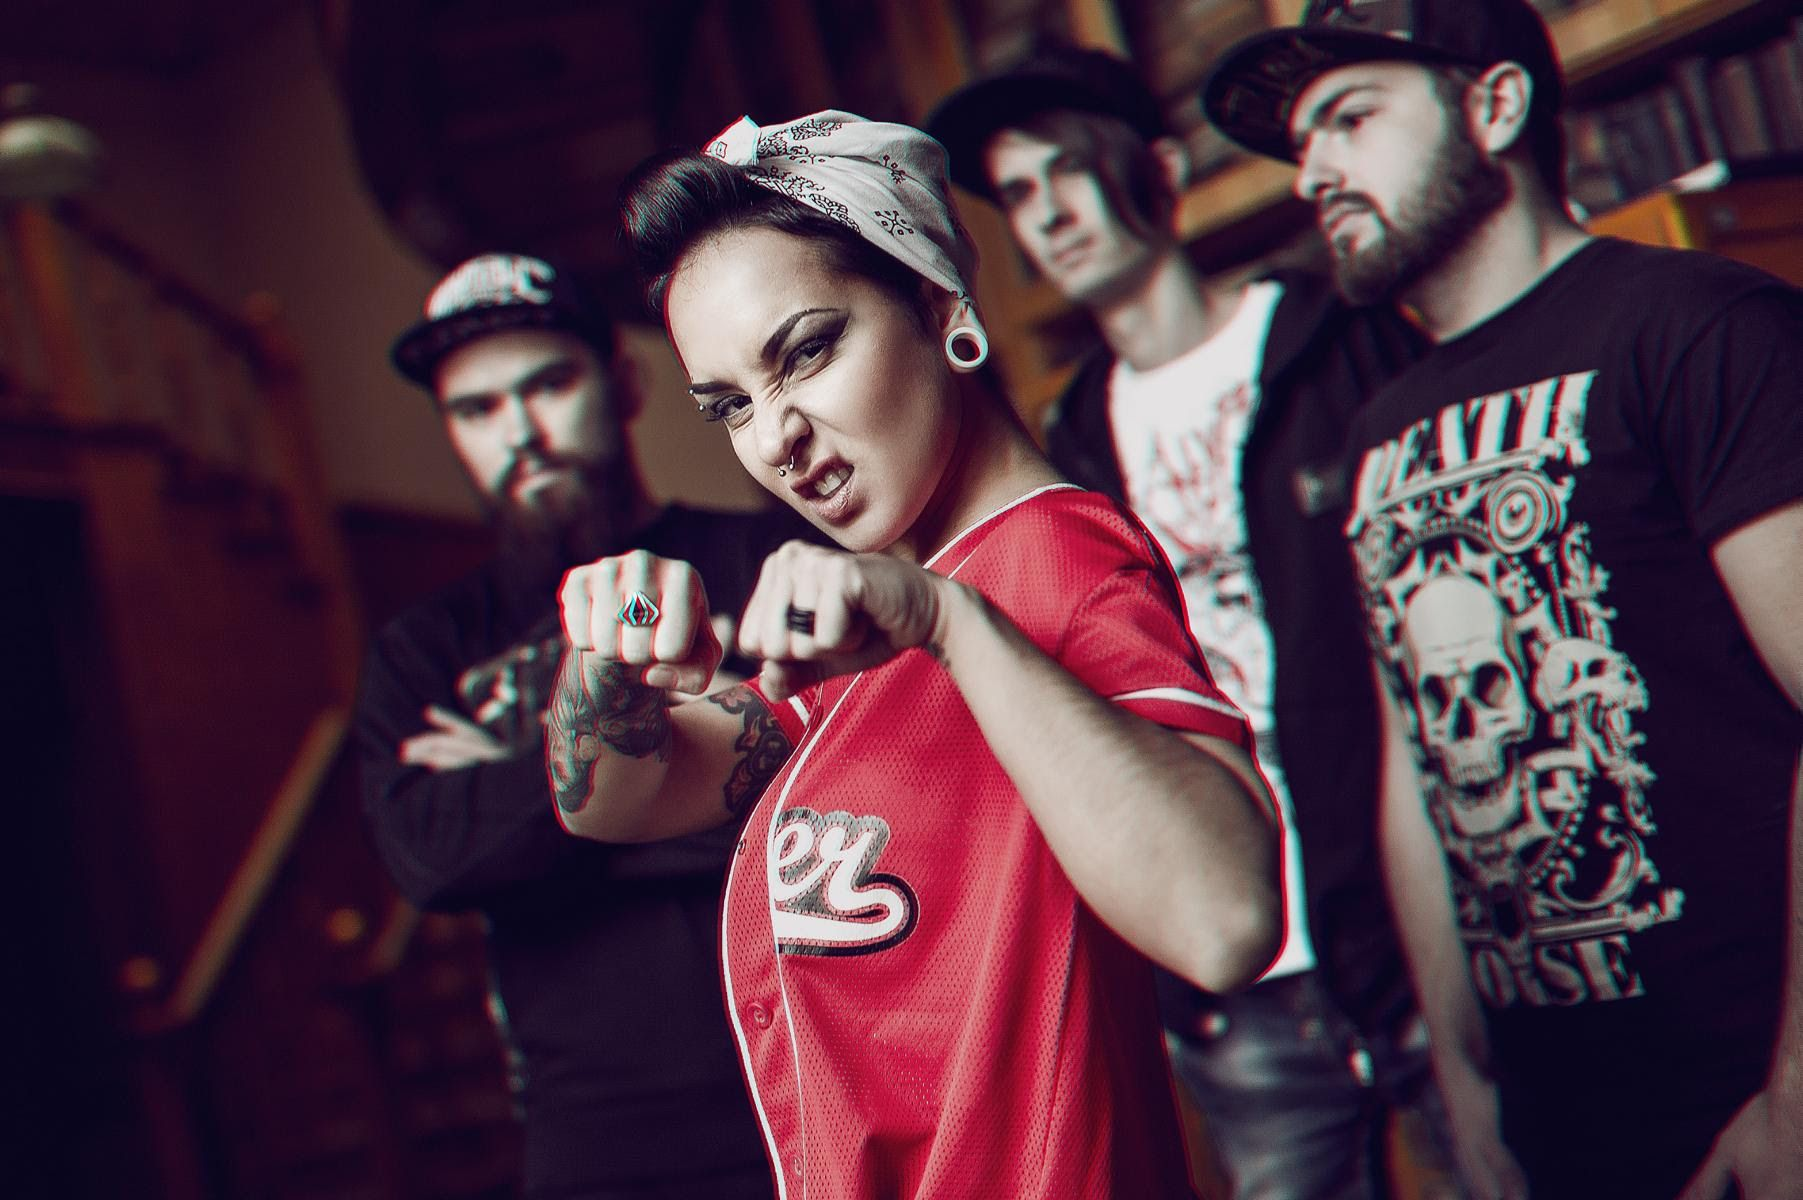 JINJER is the best-kept metal secret coming from the Ukraine, delivering a fresh mix of finest Groove Metal. Their upcoming album King Of Everything will be released July 29th 2016 via Napalm Records.